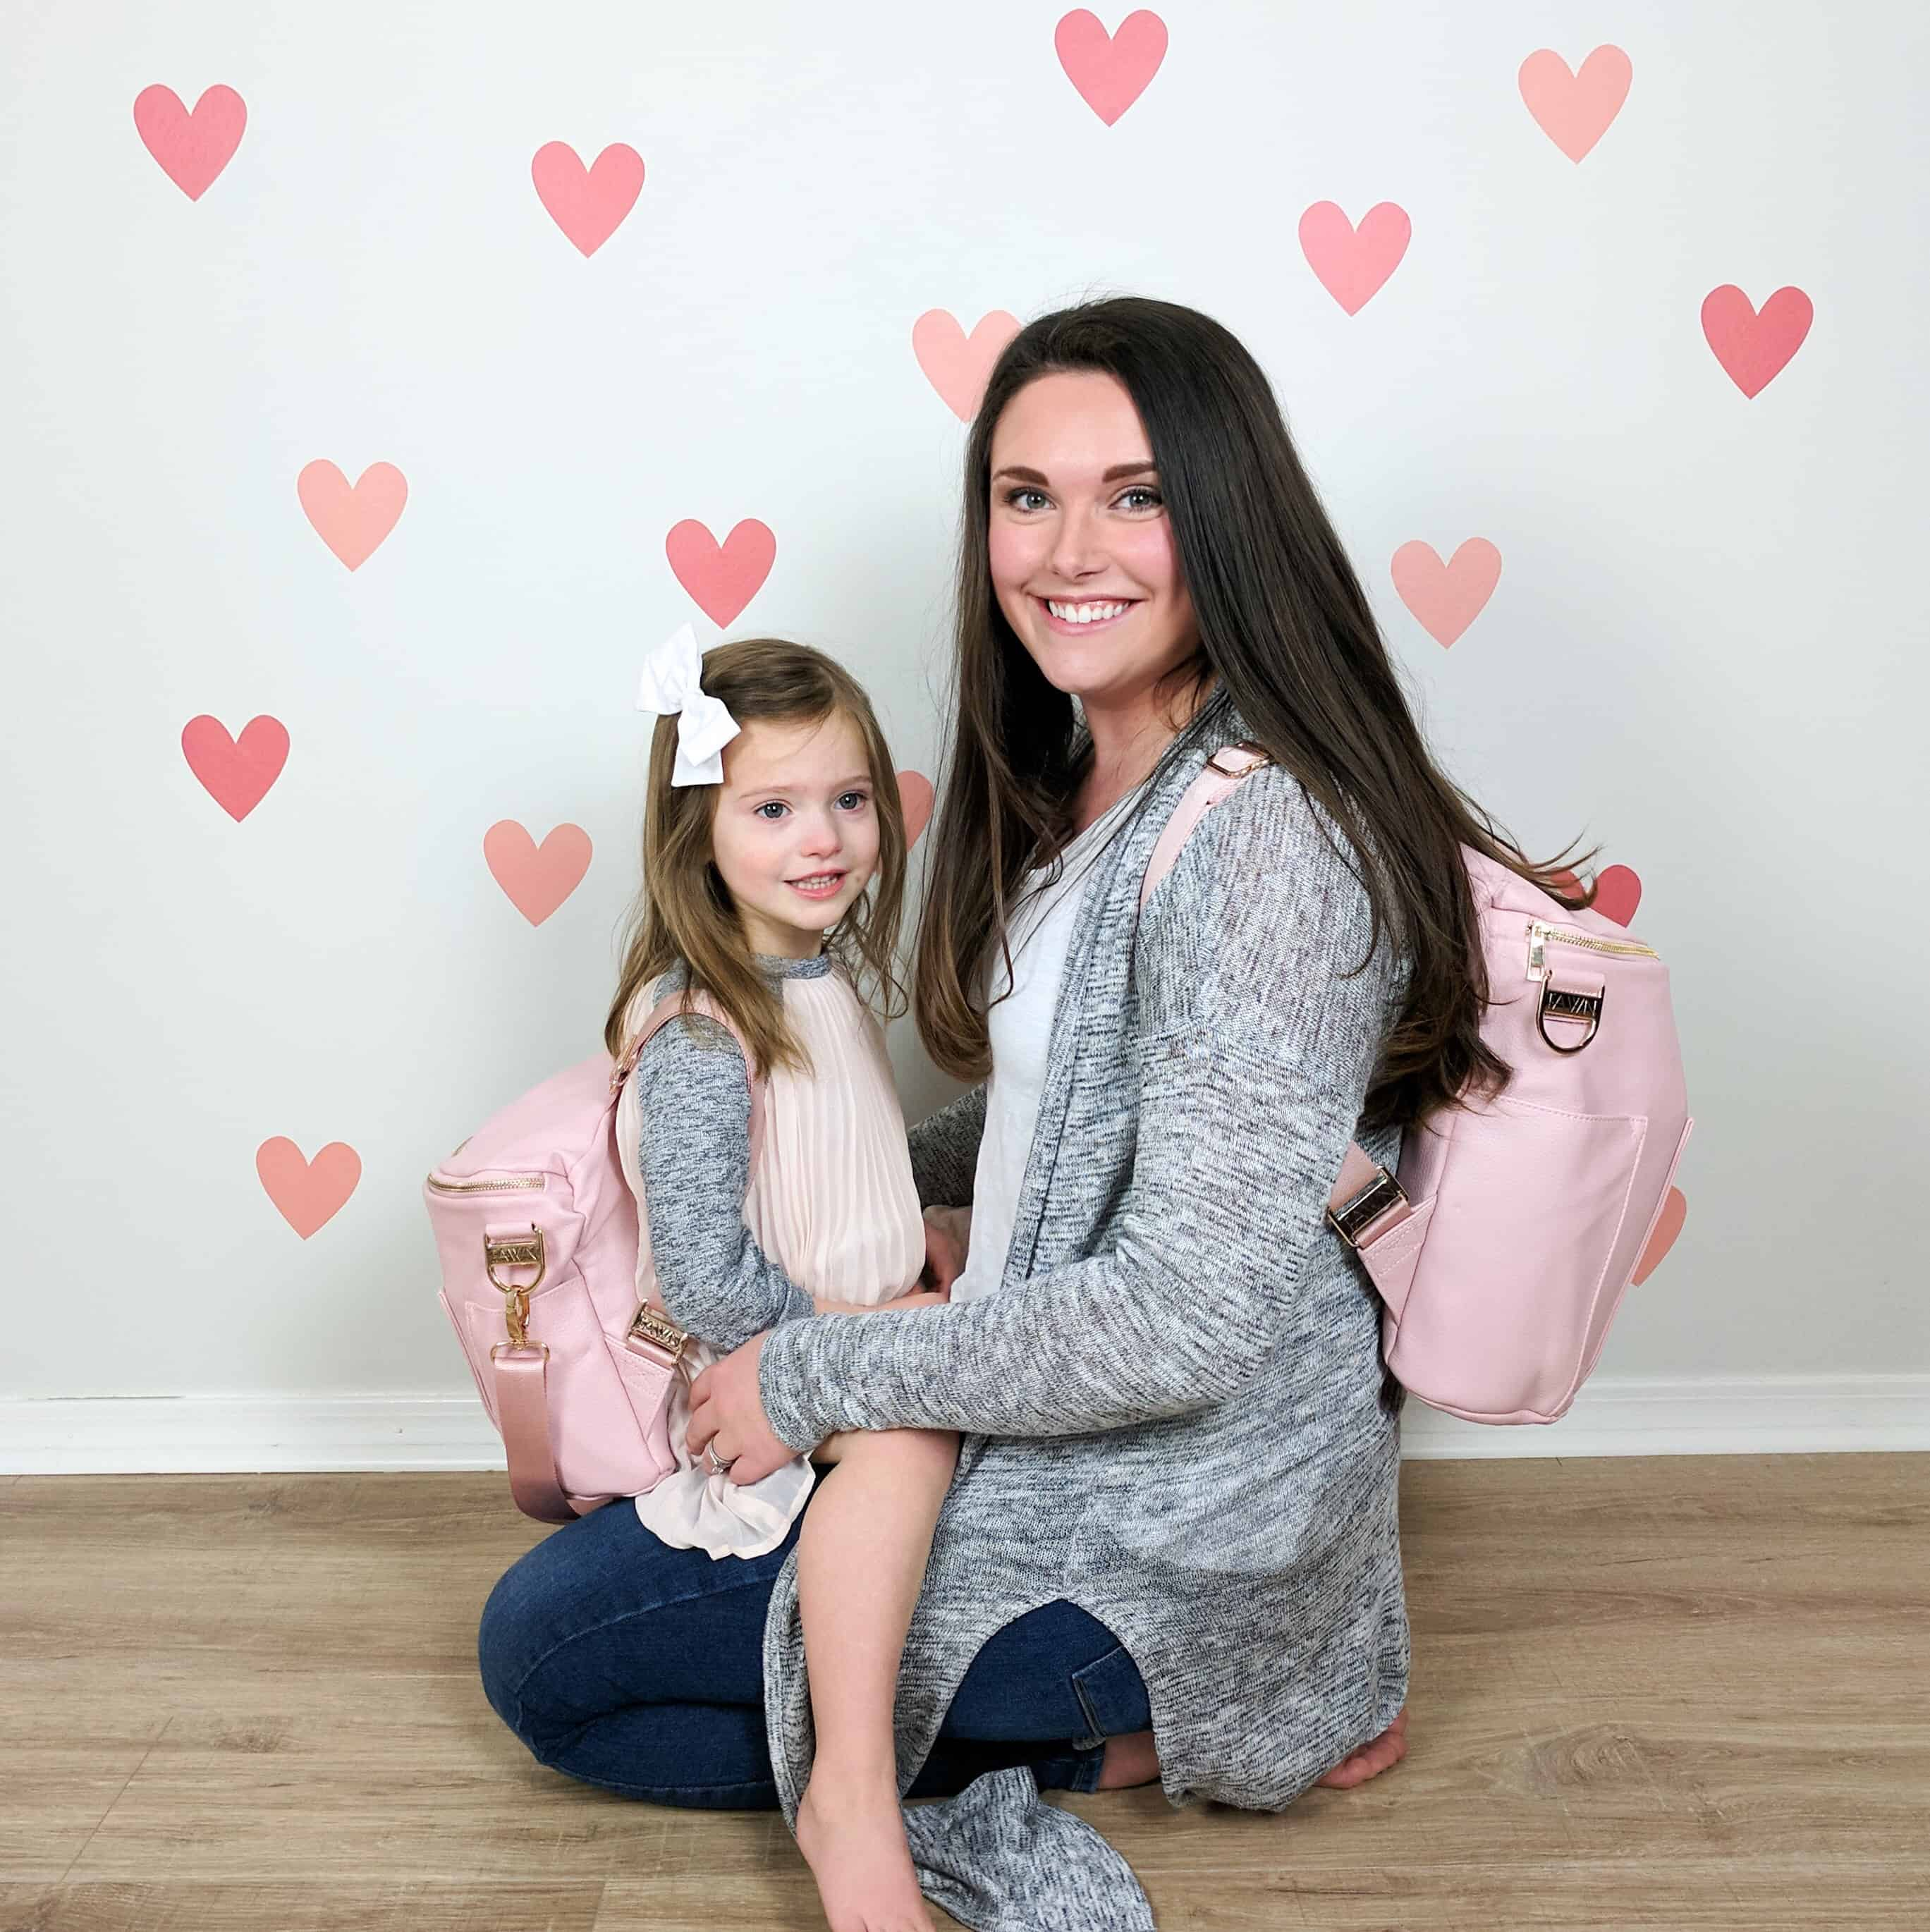 mom and daughter with matching pink bags in front of heart wall | Fawn Design Diaper Bag